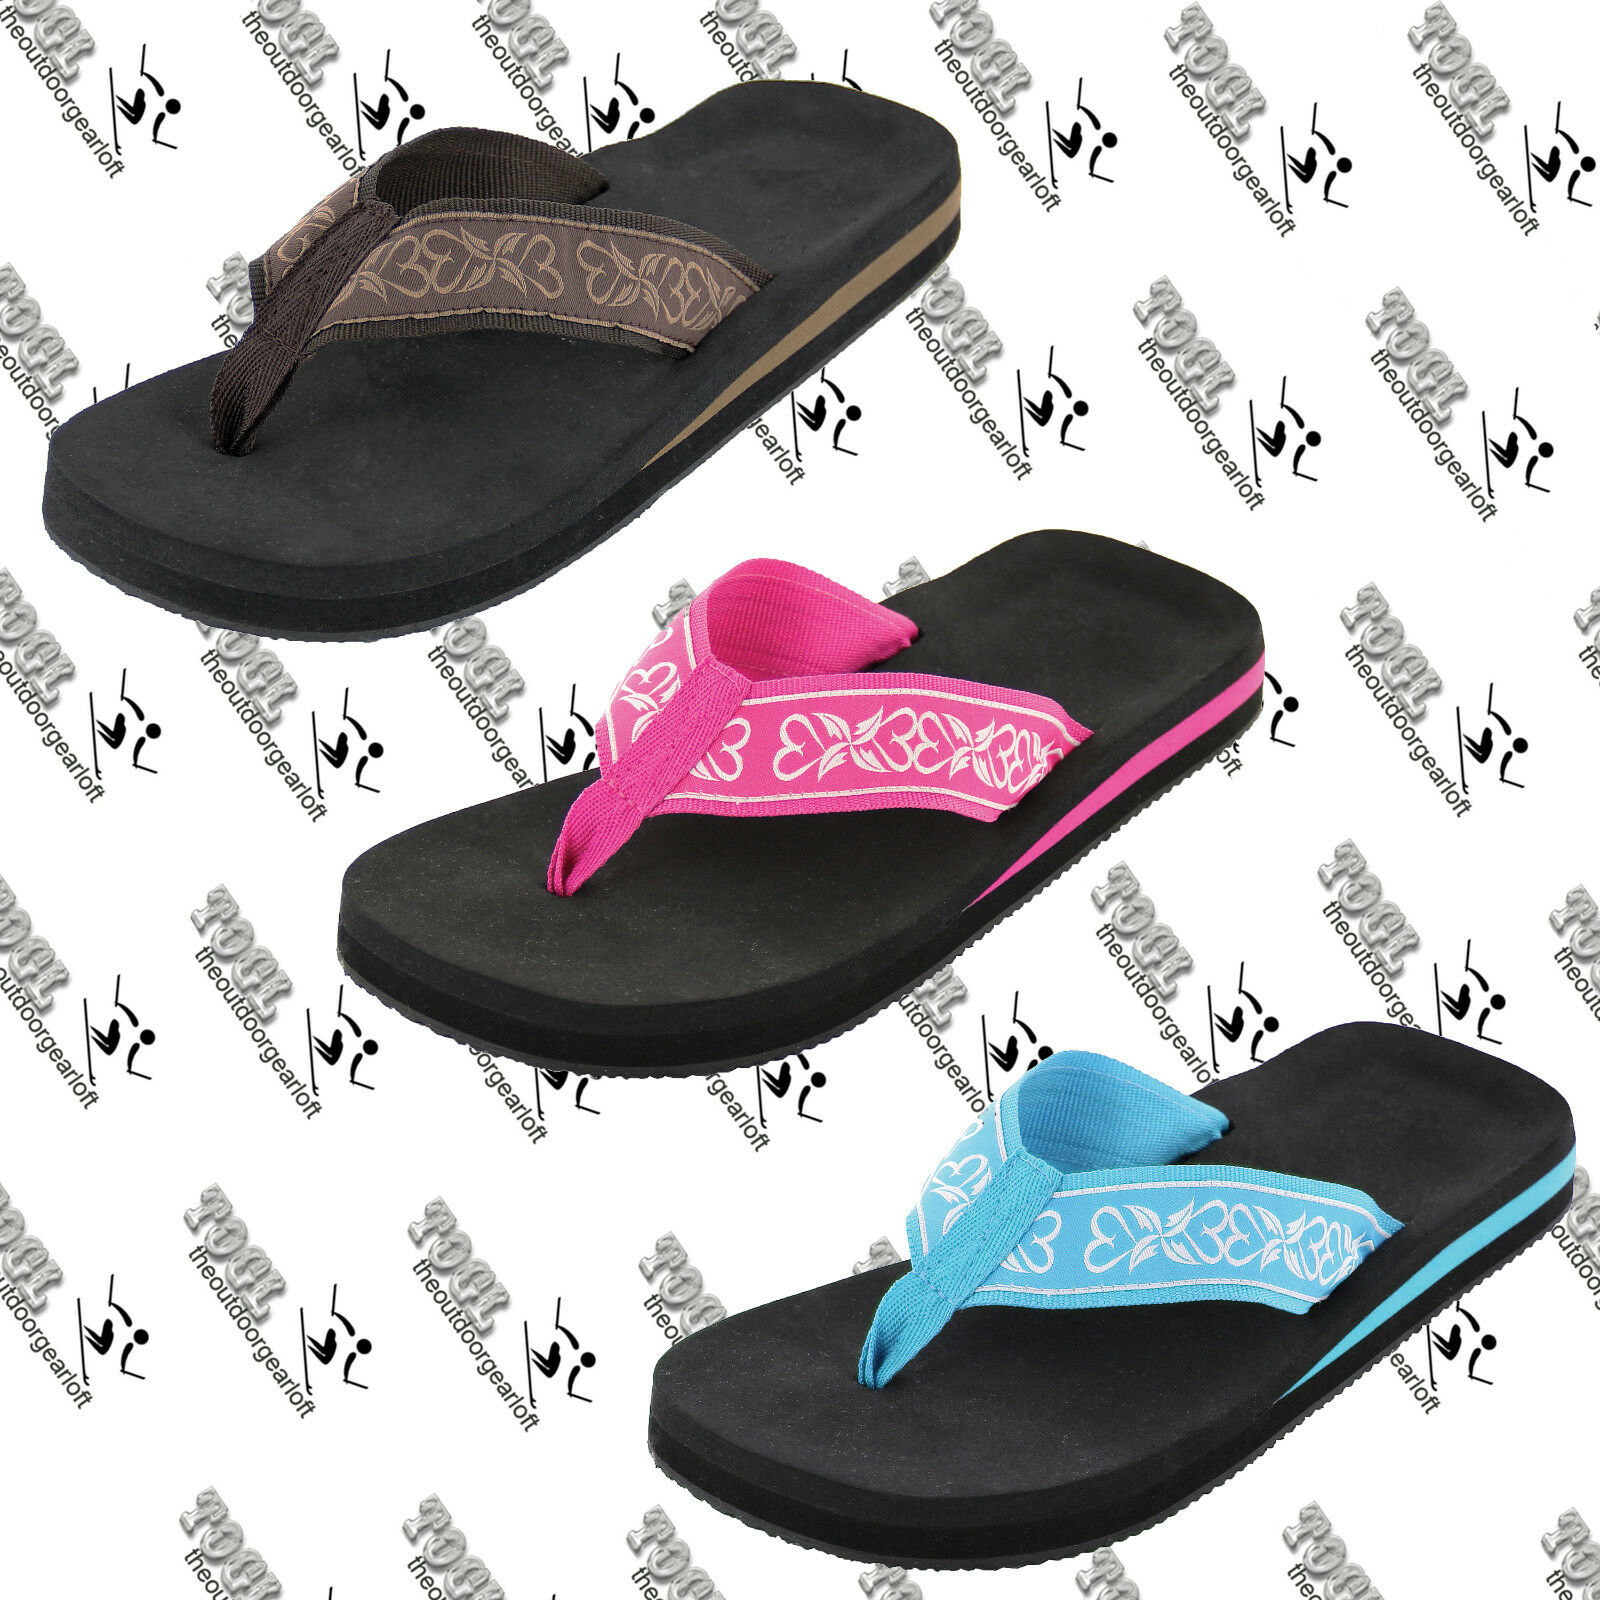 BEACH US BASICS 210877W WOMENS WOVEN NYLON FLIP FLOP THONG US BEACH 8, MINOR INSOLE DENTS e4cf44